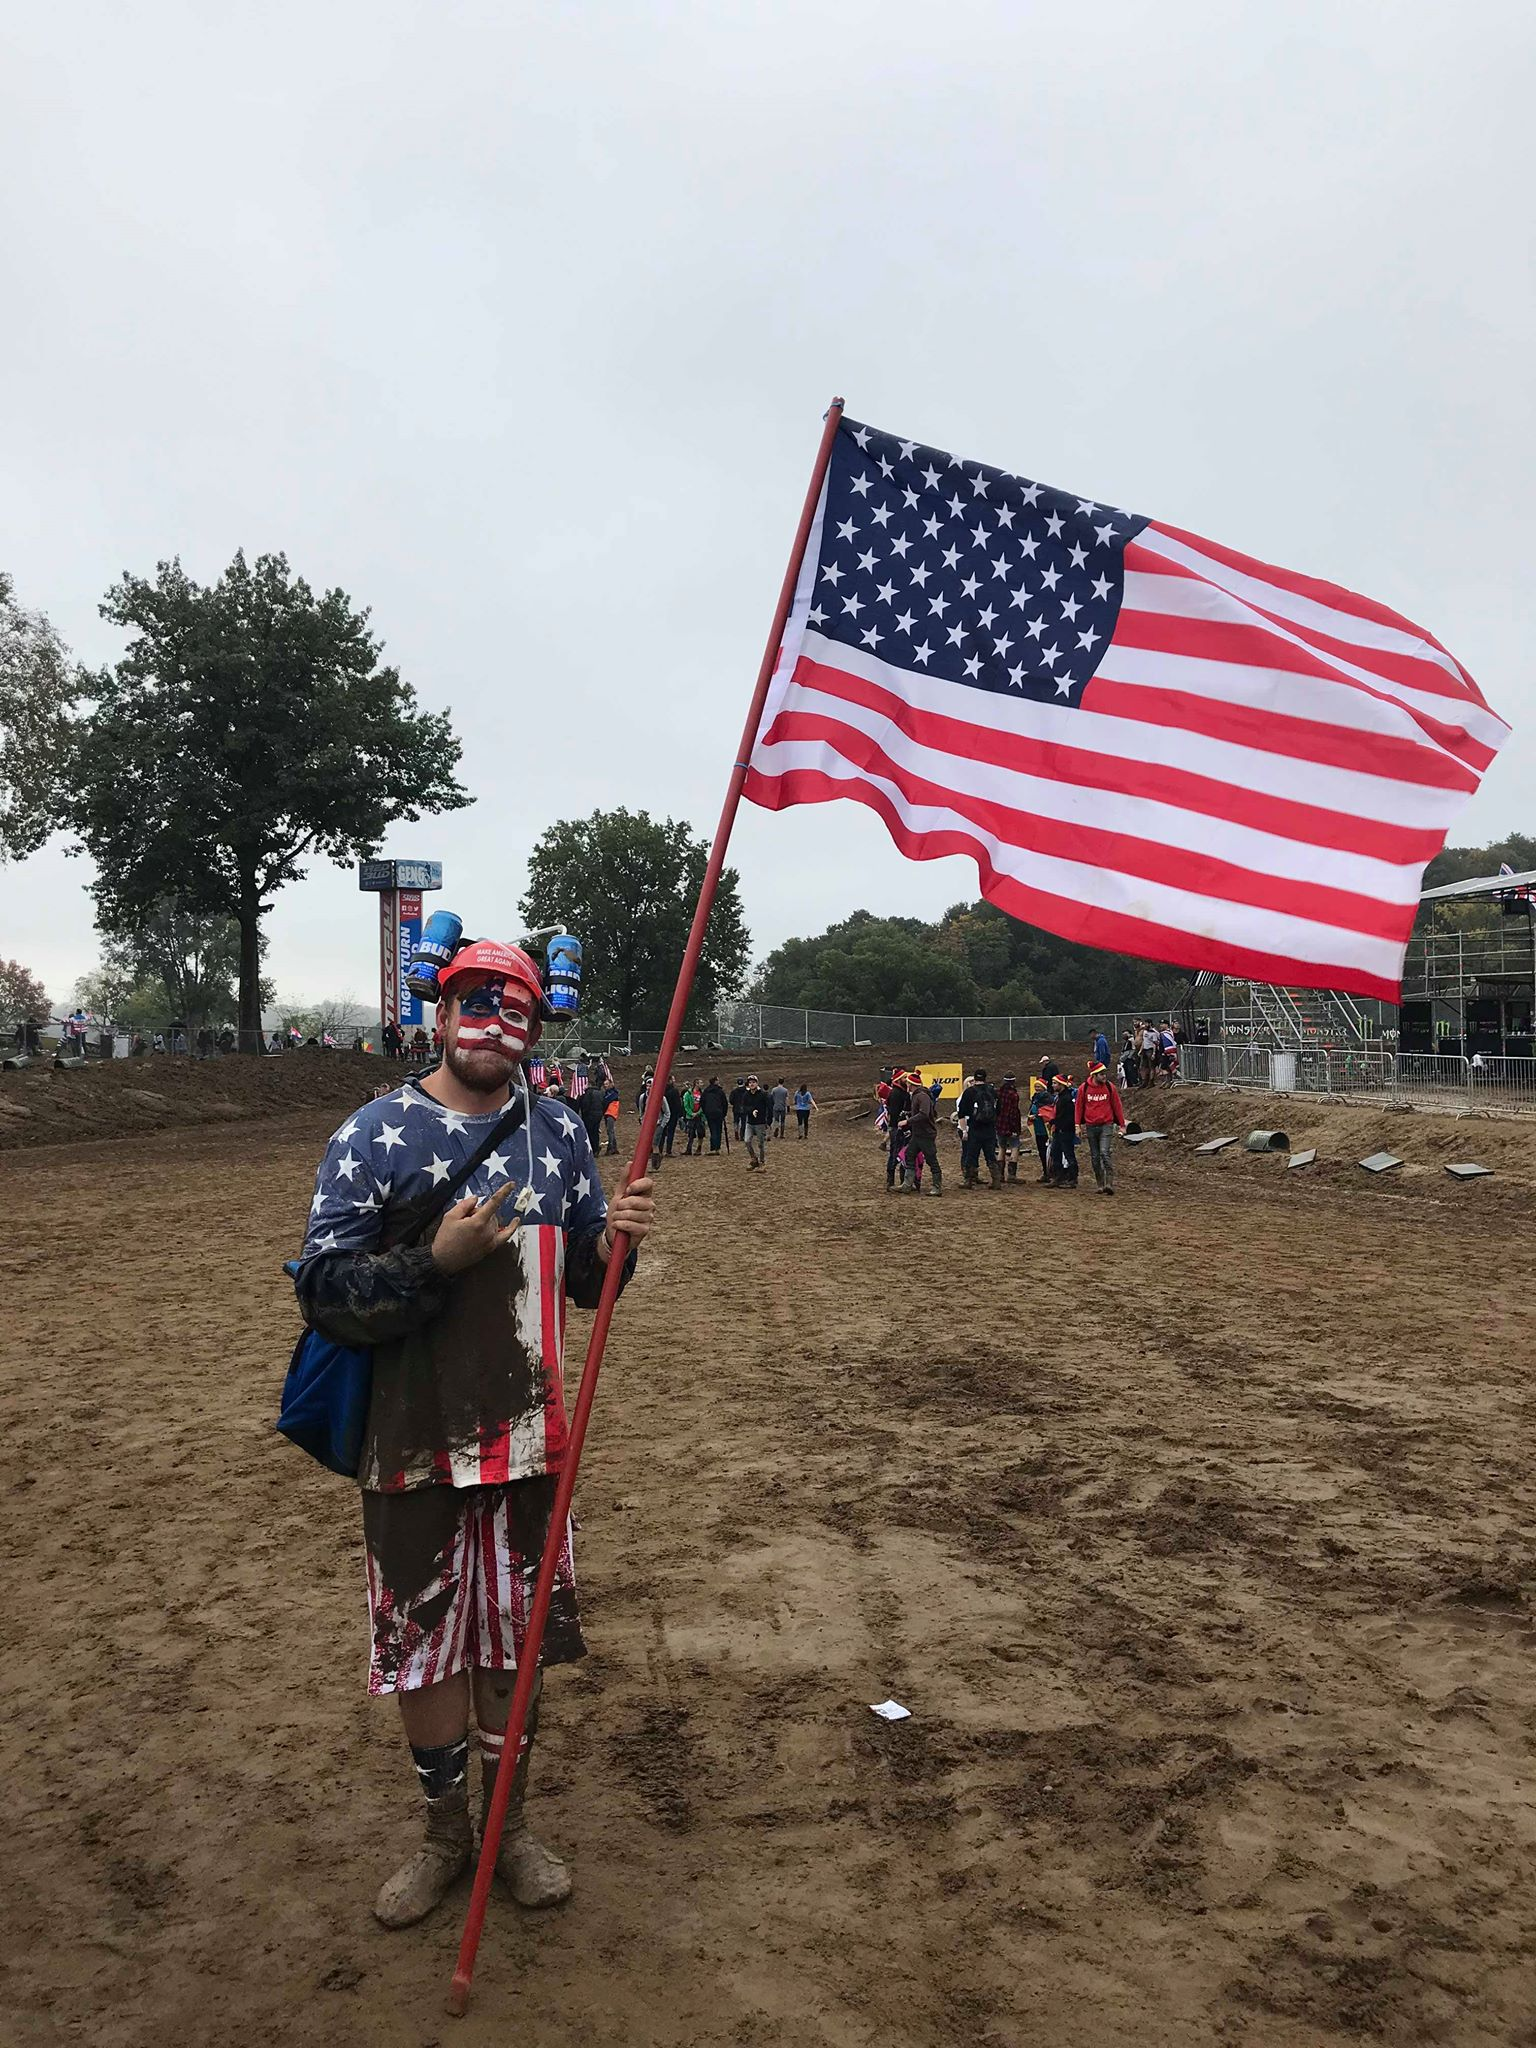 Dane Rouse himself took a break from building rad Honda two strokes to damn the red, white, and blue and represent for the gold oel USA.